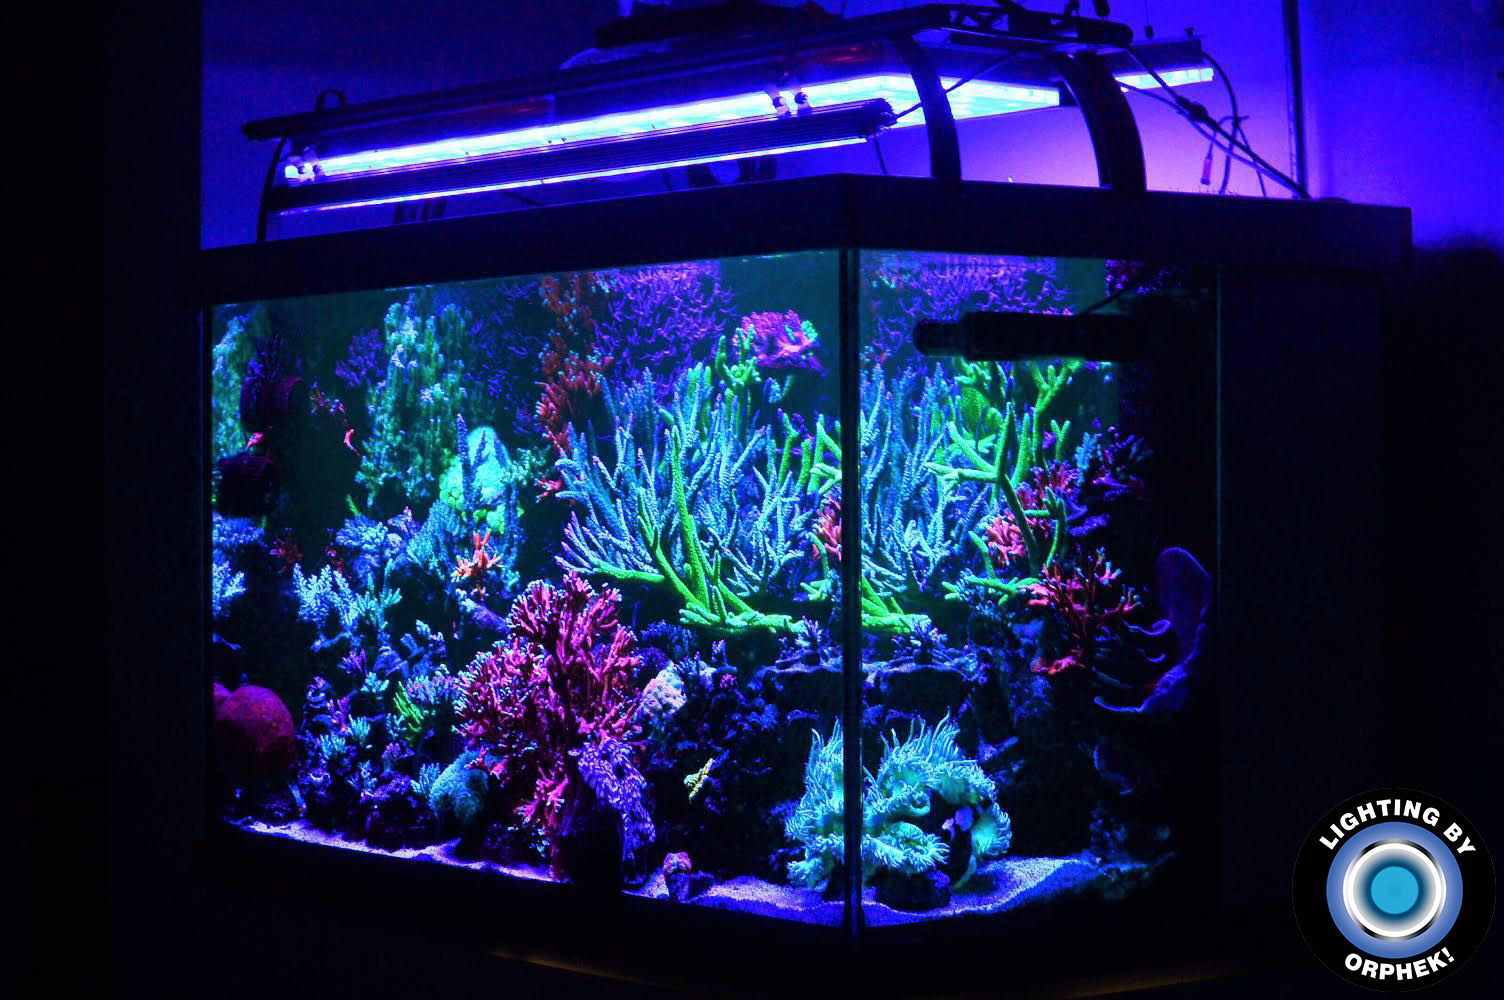 amazing reef kingdom grew with orphek LED lighting